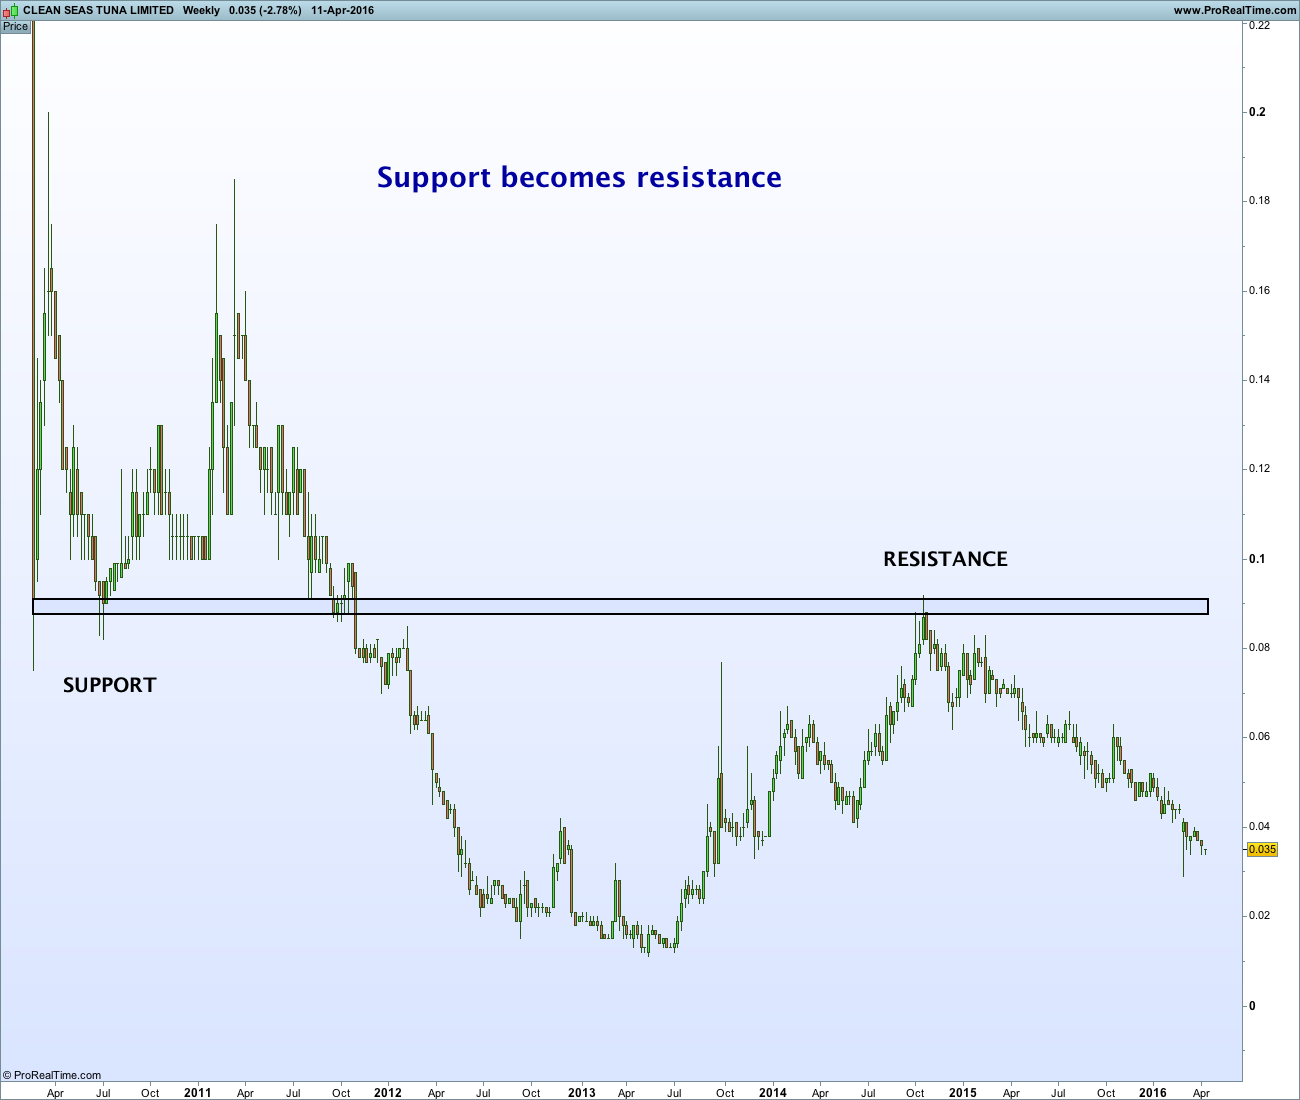 Support becosmes resistance